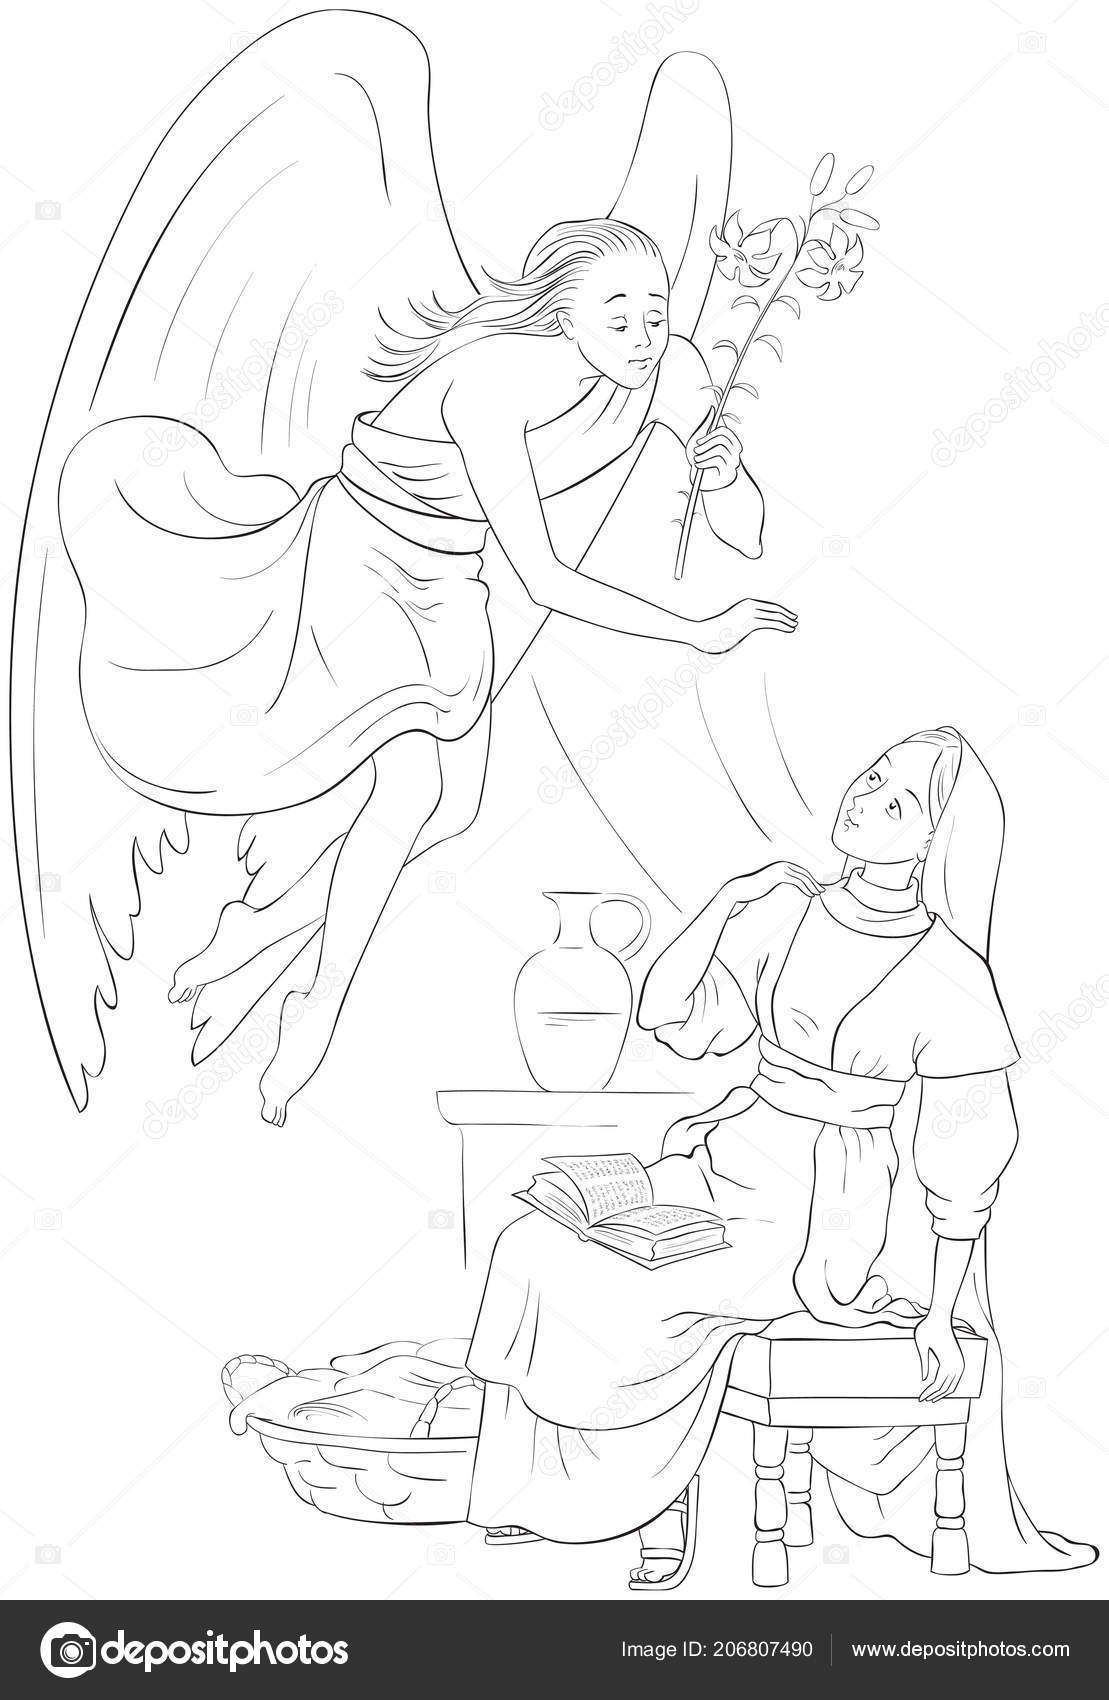 Annunciation Coloring Page Angel Gabriel Announcement Mary ...